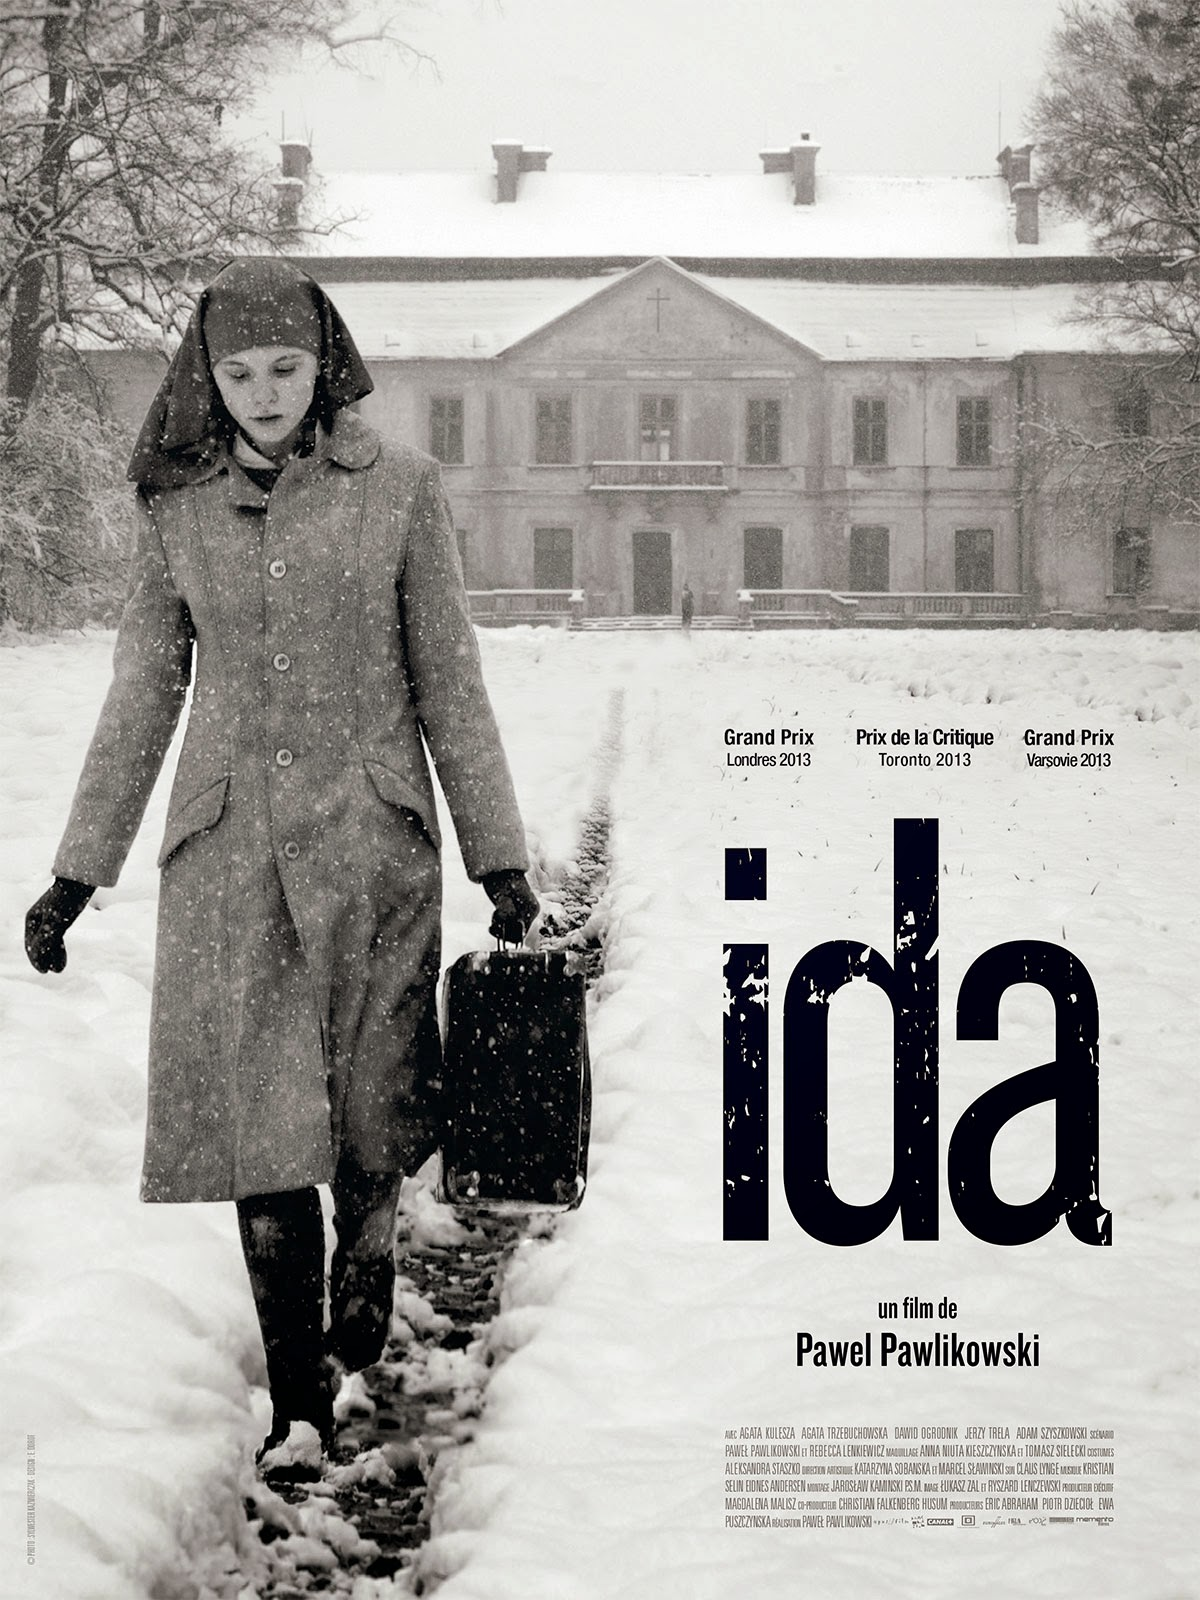 Ida (2013) - Directed by: Pawel PawlikowskiStarring: Agata Kulesza, Agata Trzebuchowska, David Ogrodnik, Adam SzyszkowskiRated: PG-13 for Thematic Elements, Some Sexuality and SmokingRunning Time: 1 h 22 mTMM Score: 5 stars out of 5STRENGTHS: Directing, Writing, Themes, Cinematography, ActingWEAKNESSES: -